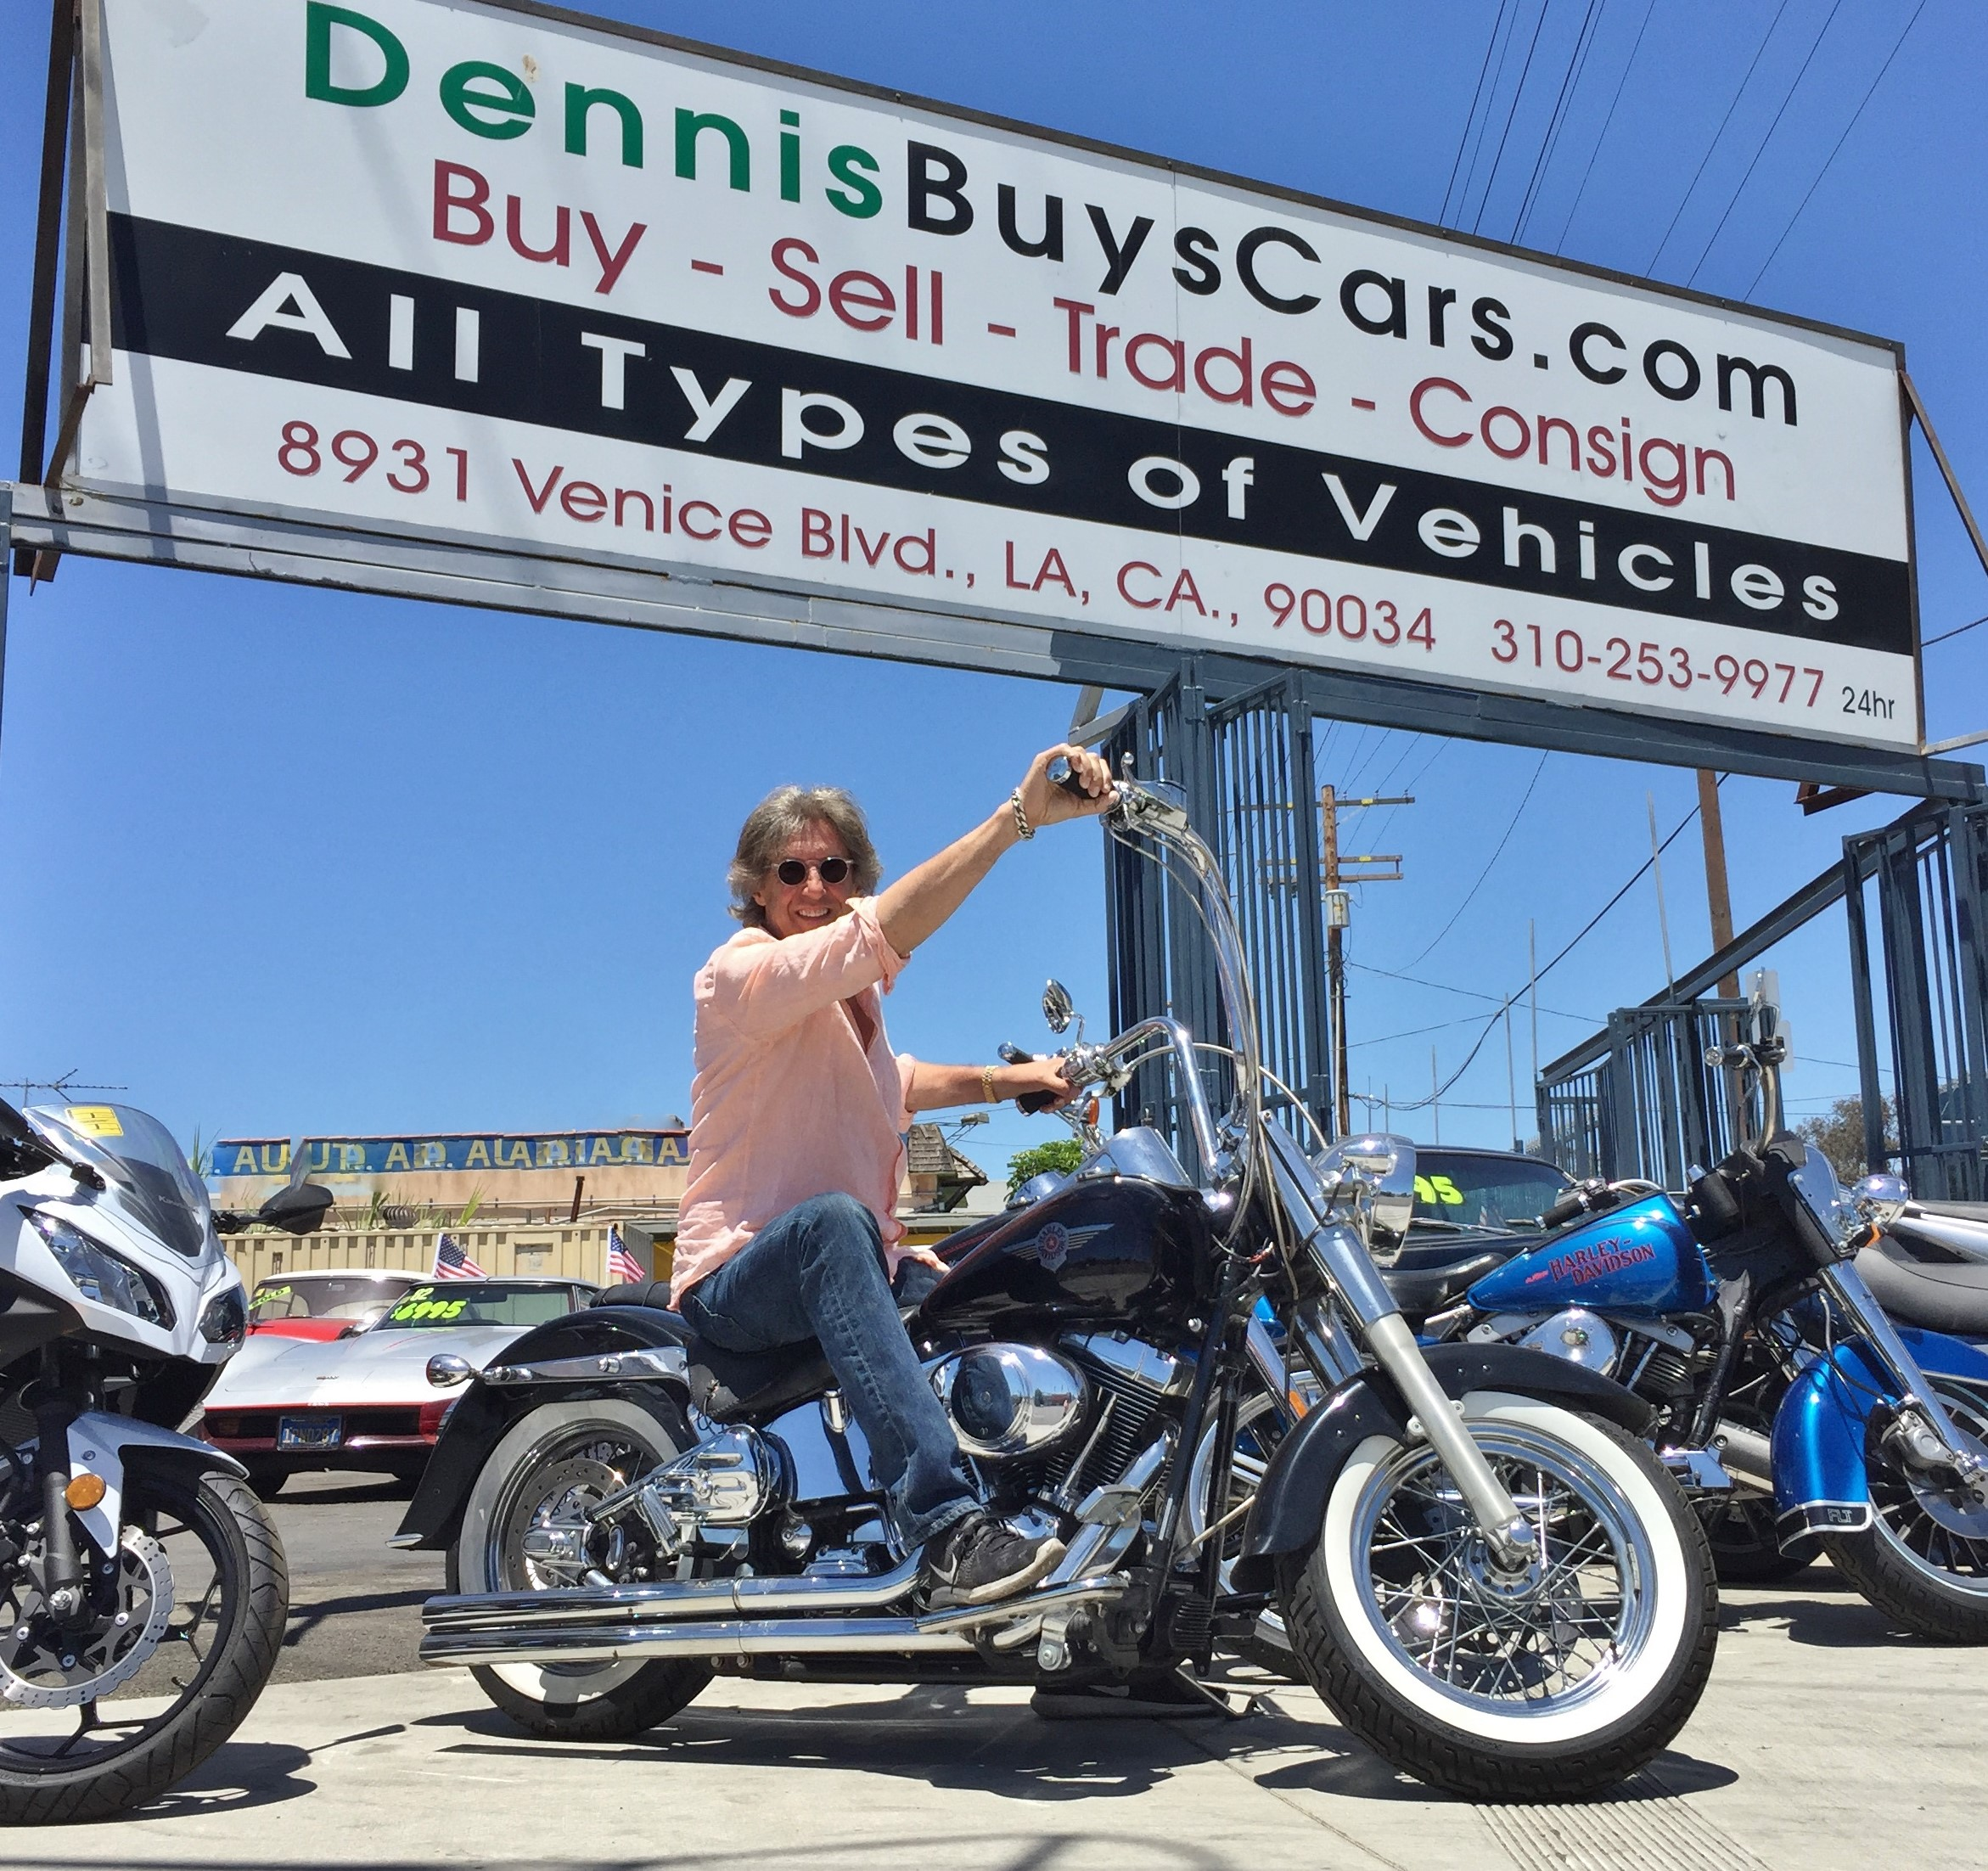 Get the Most Cash for Your Old Harley at Dennis Buys Cars in Los Angeles